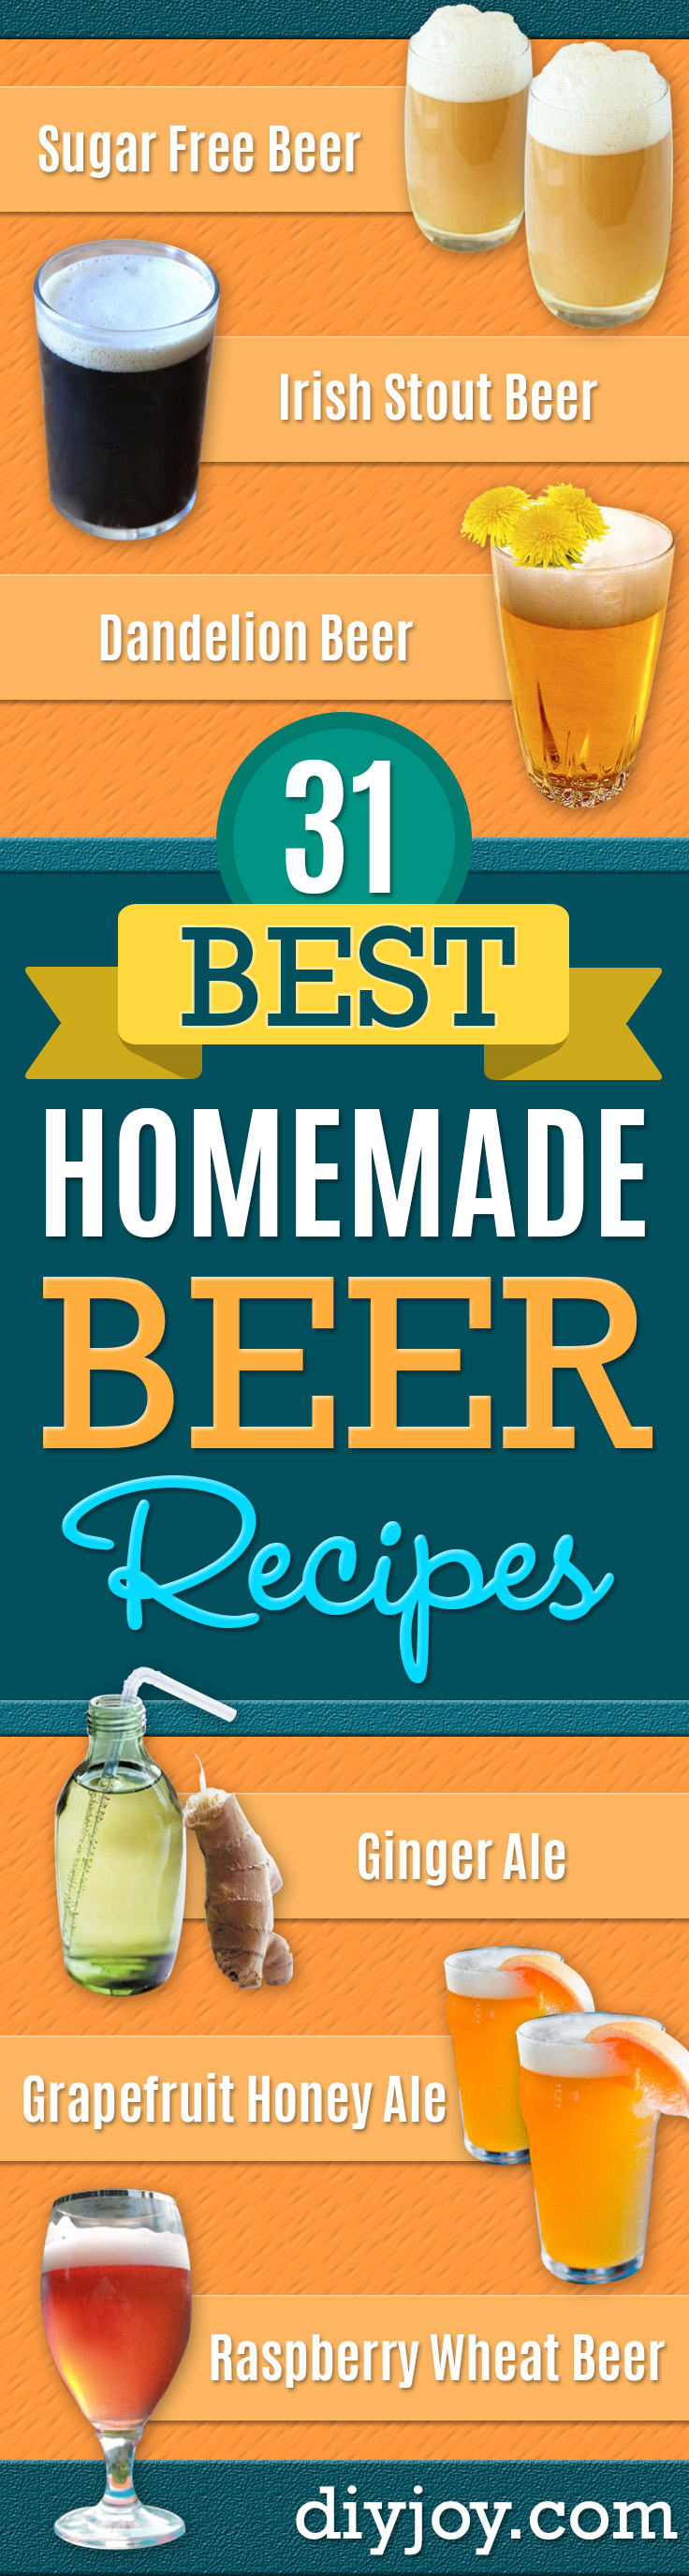 Best Homemade Beer Recipes - Easy Homebrew Drinks and Brewing Tutorials for Craft Beers Made at Home - IPA, Summer, Red, Lager and Ales - Instructions and Step by Step Tutorials for Making Beer at Home http://diyjoy.com/homemade-beer-recipes